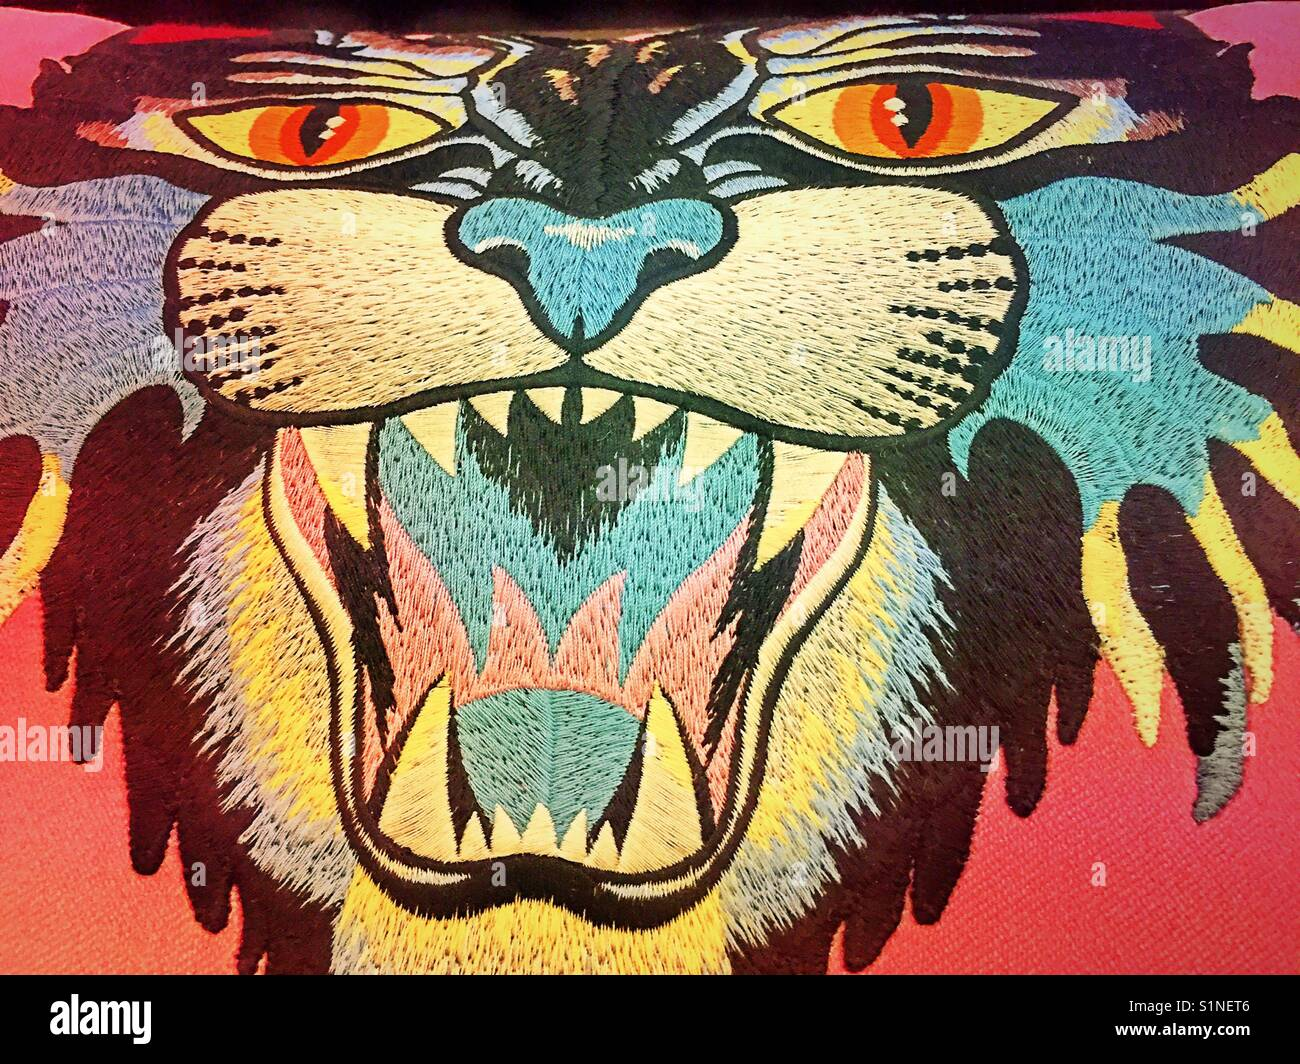 Gucci Tiger Wallpaper United States Usa Stock Photo 310873926 Alamy